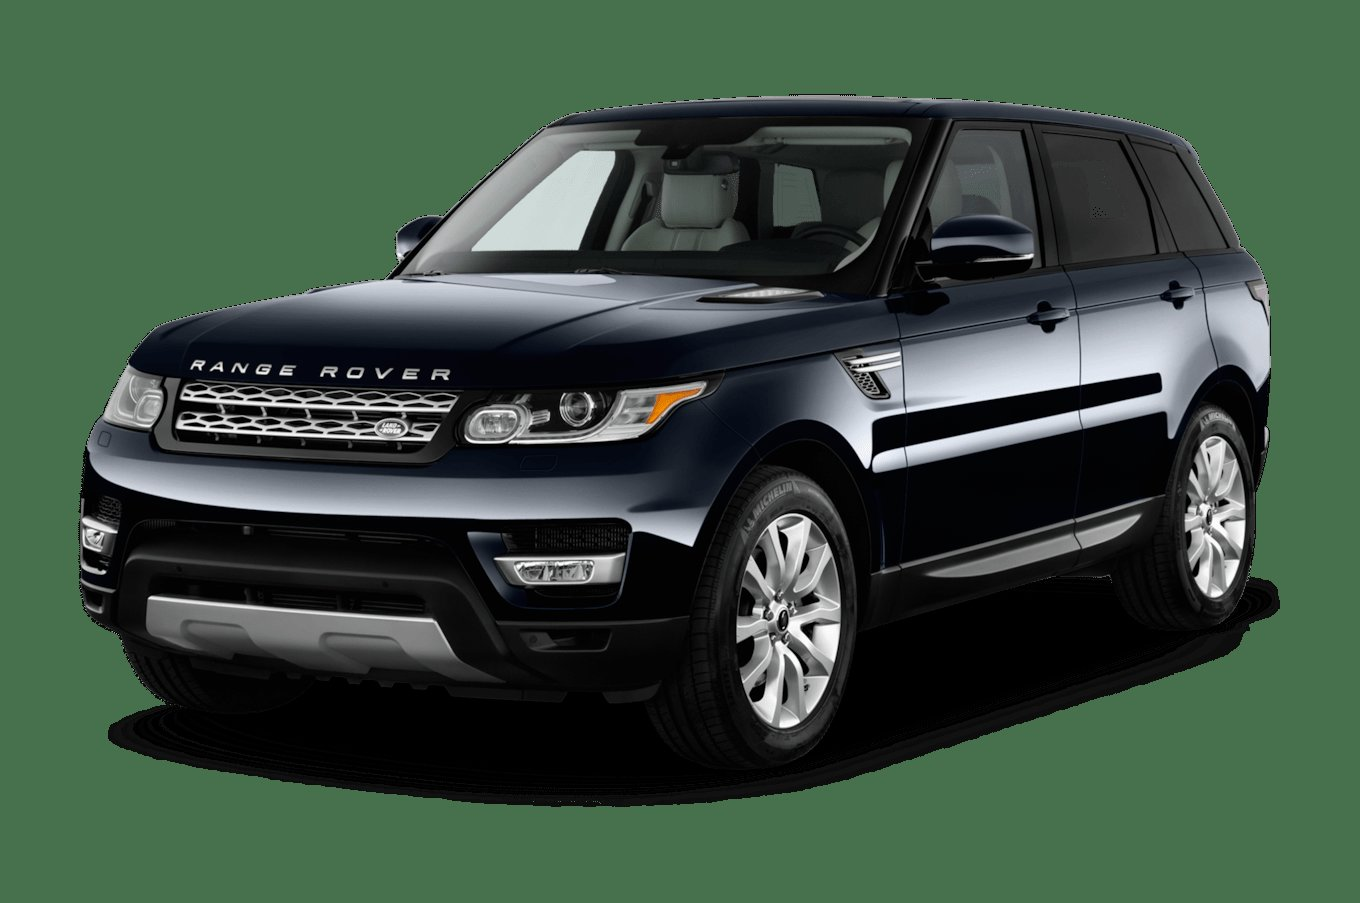 New 2016 Land Rover Range Rover Sport Diesel Reviews And On This Month